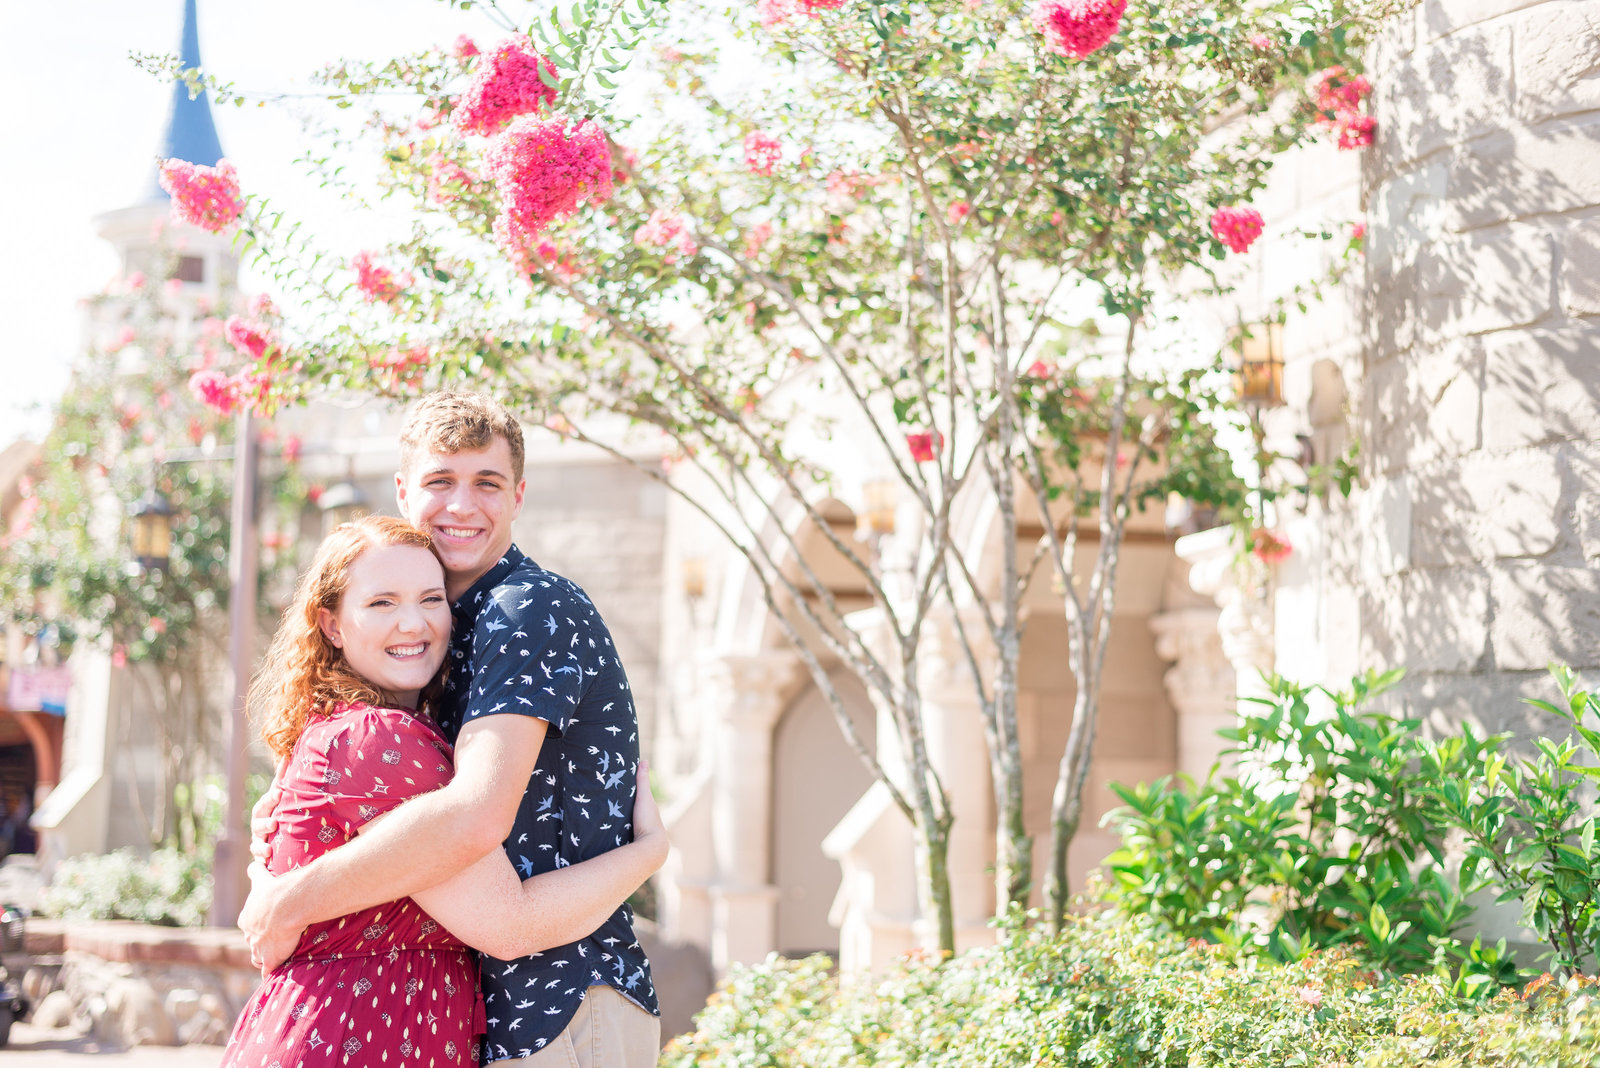 Disney Engagement Photographer, Disney Engagement Photography, Disney Photography